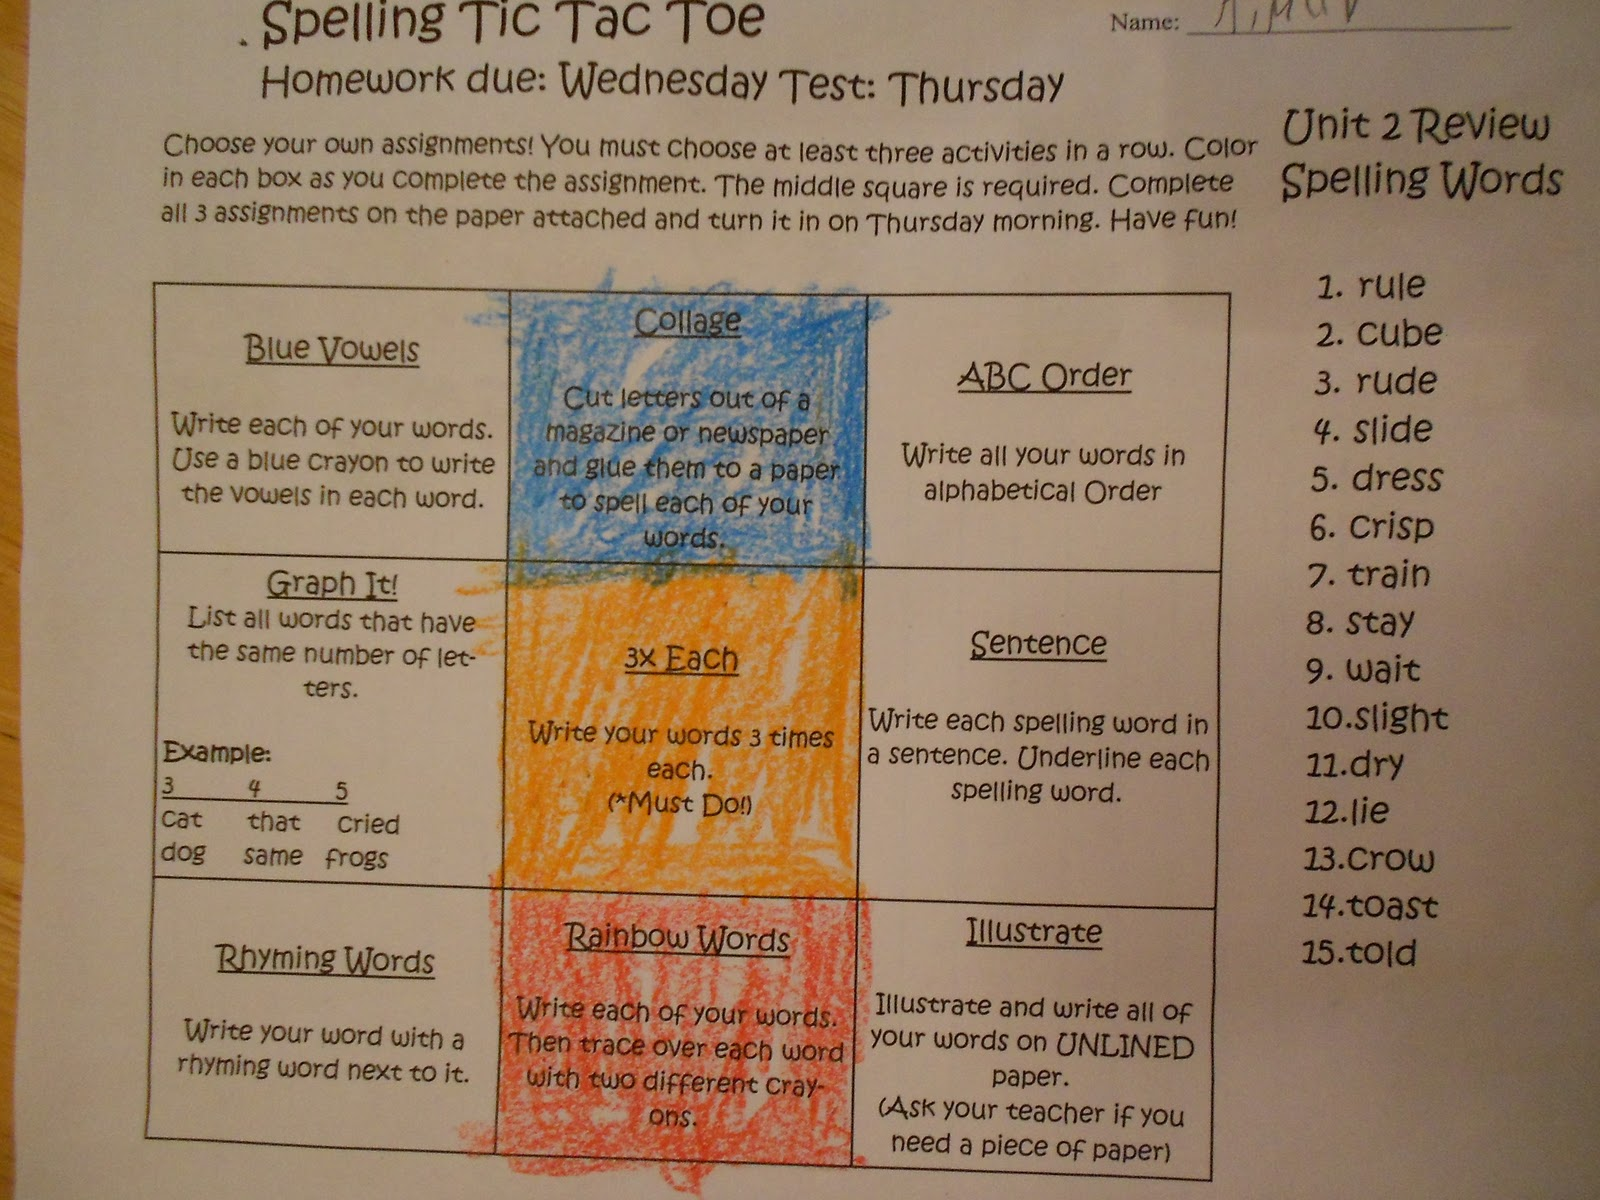 Spelling tic tac toe menu classroom freebies for Tic tac toe menu template